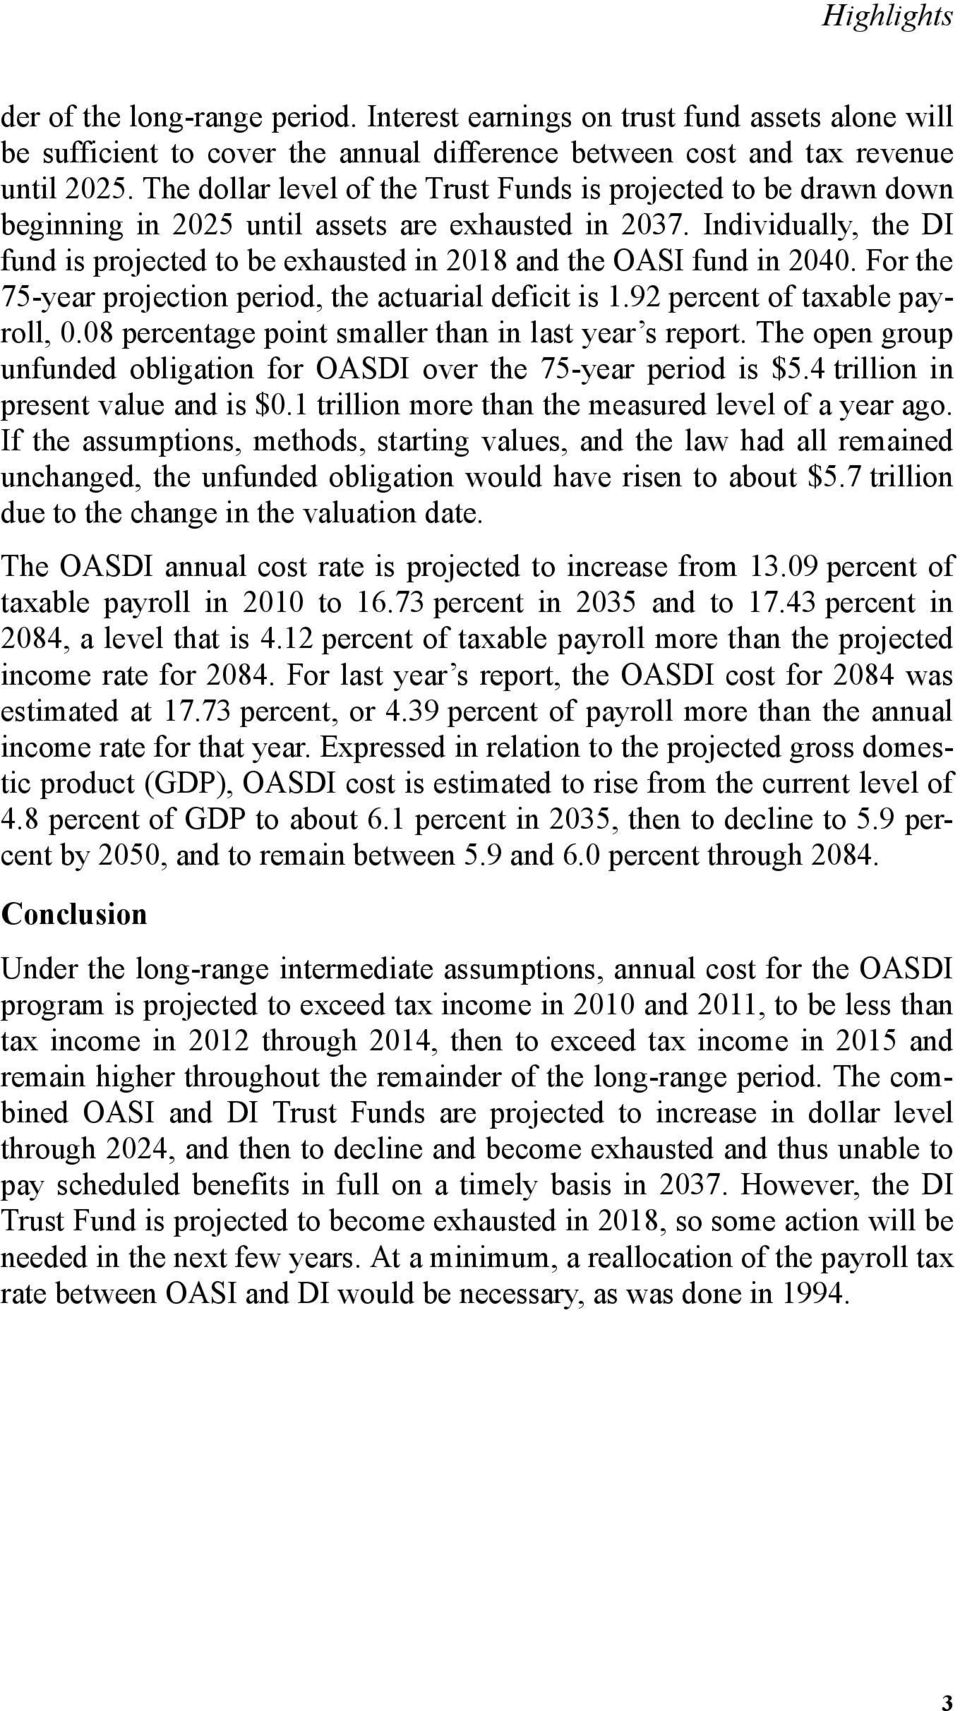 Individually, the DI fund is projected to be exhausted in 2018 and the OASI fund in 2040. For the 75-year projection period, the actuarial deficit is 1.92 percent of taxable payroll, 0.